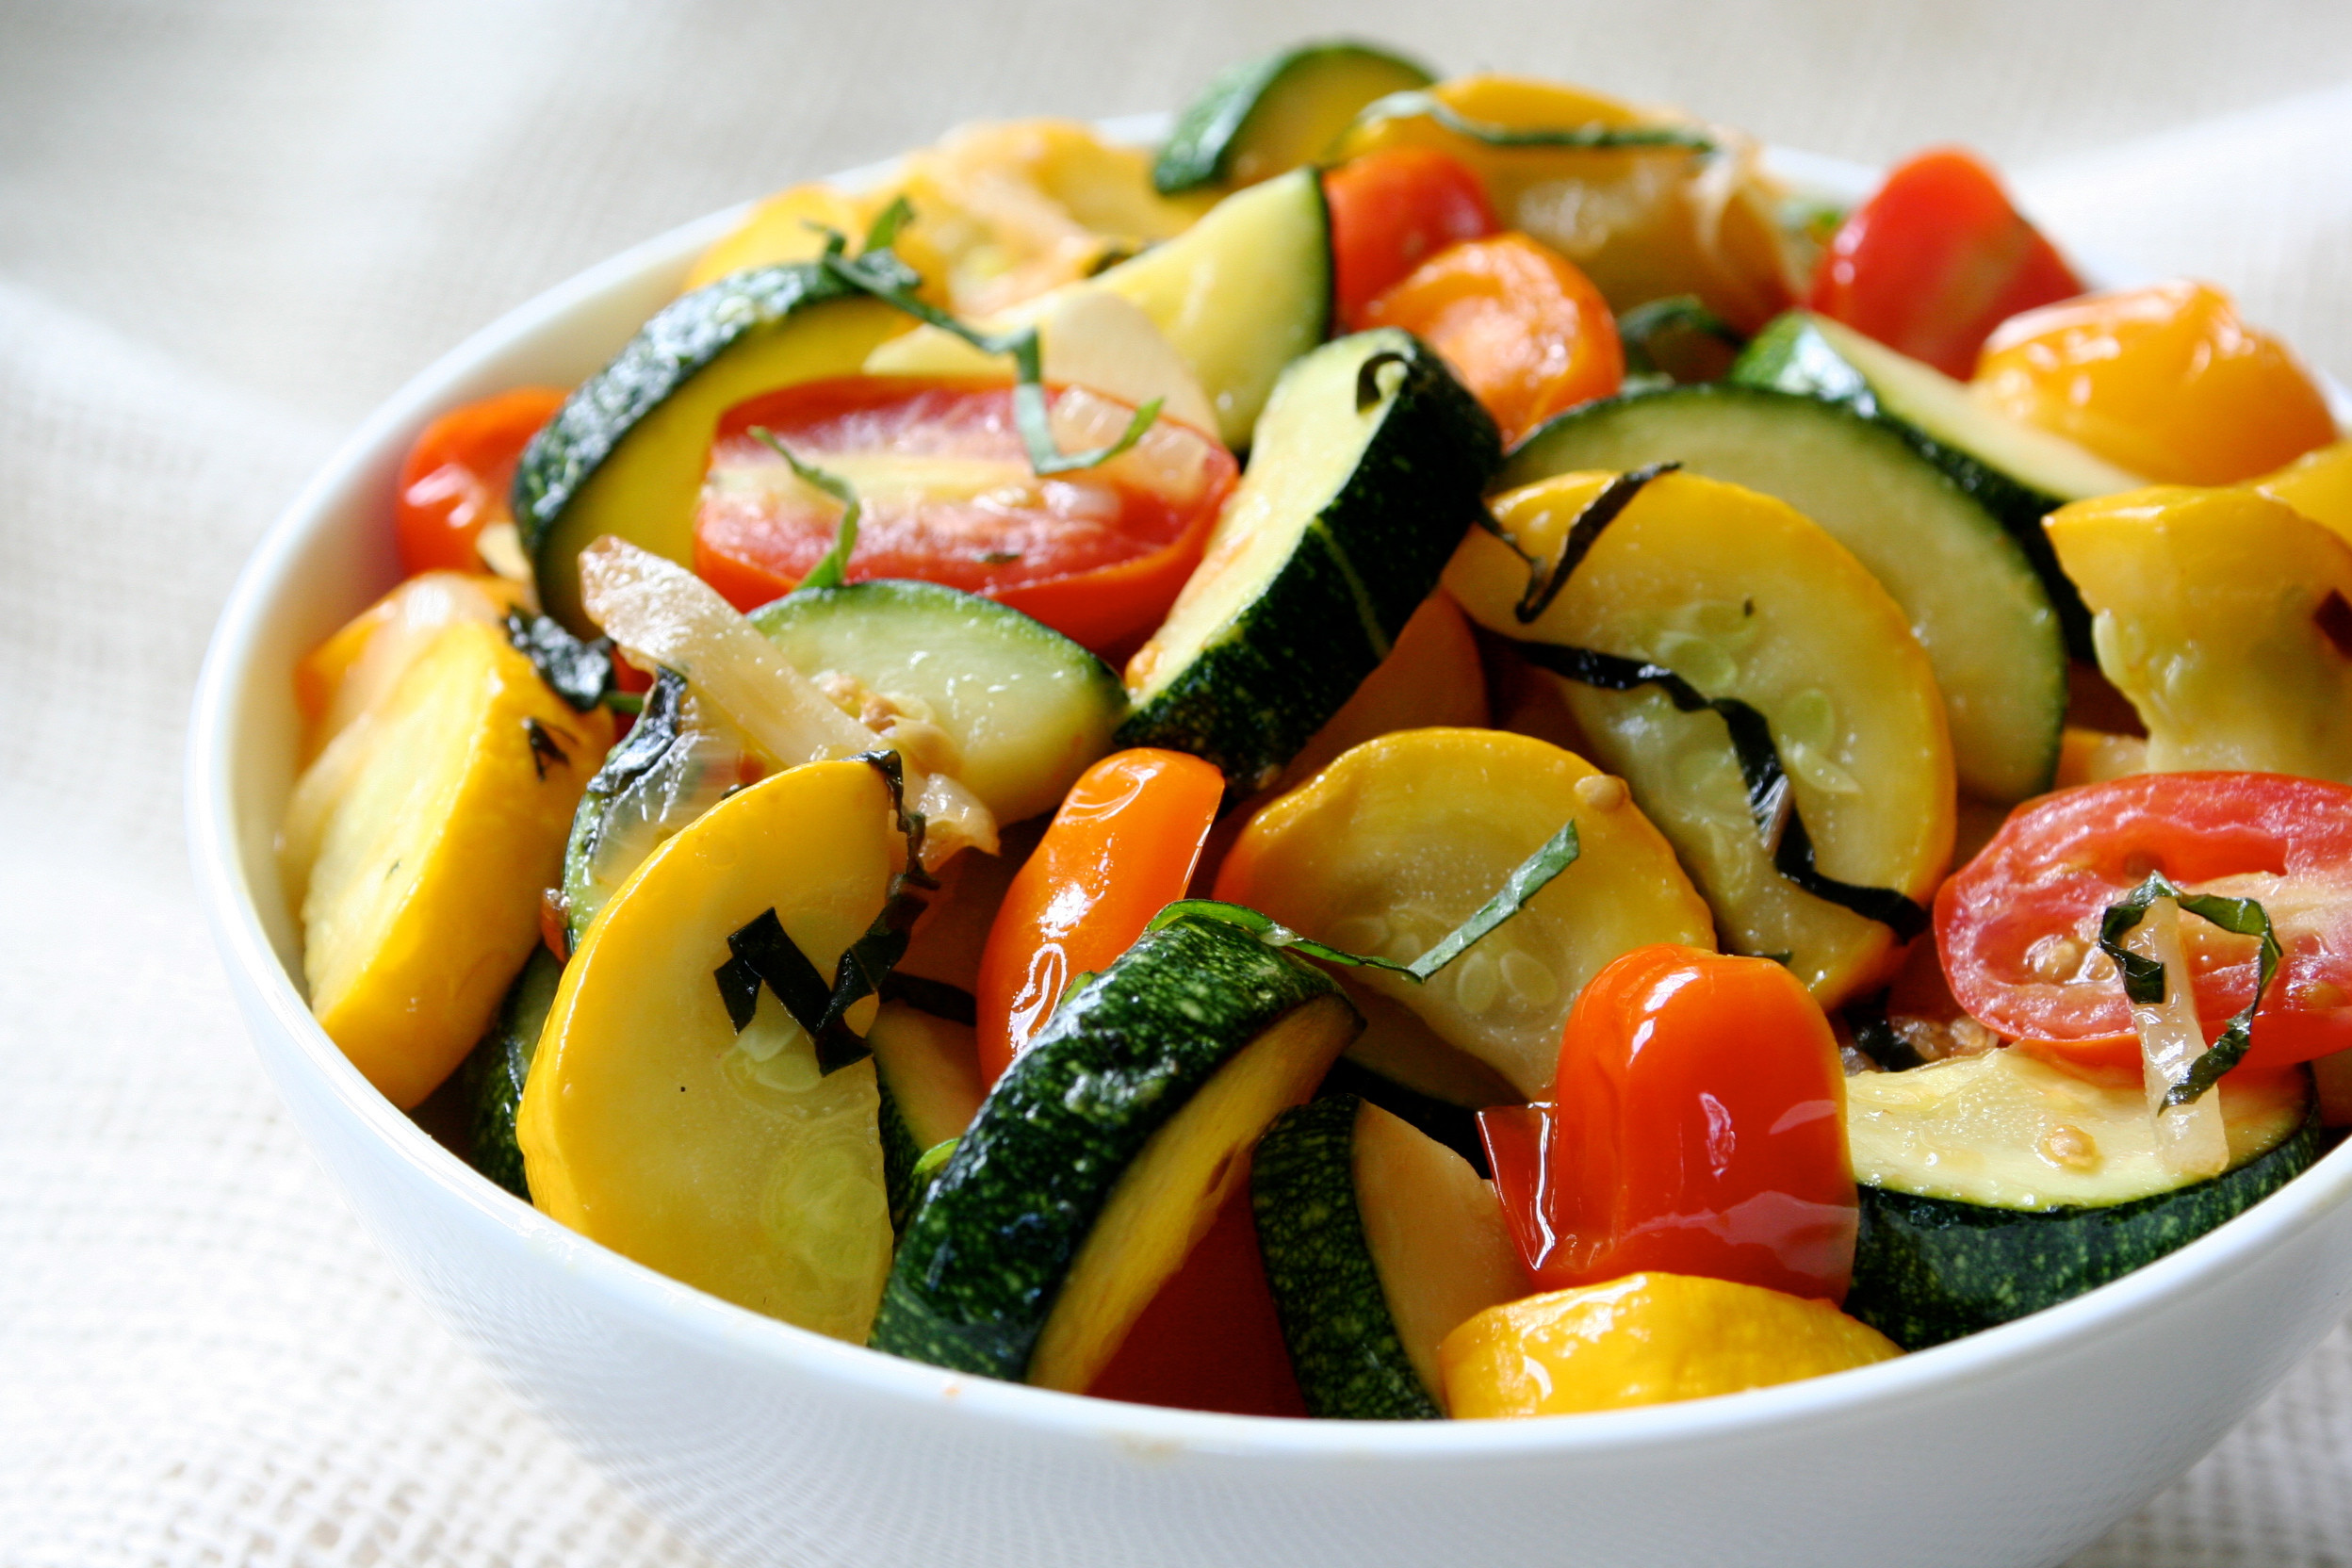 Summer Squash Recipes  Sautéed Summer Squash with Wilted Cherry Tomatoes Pots